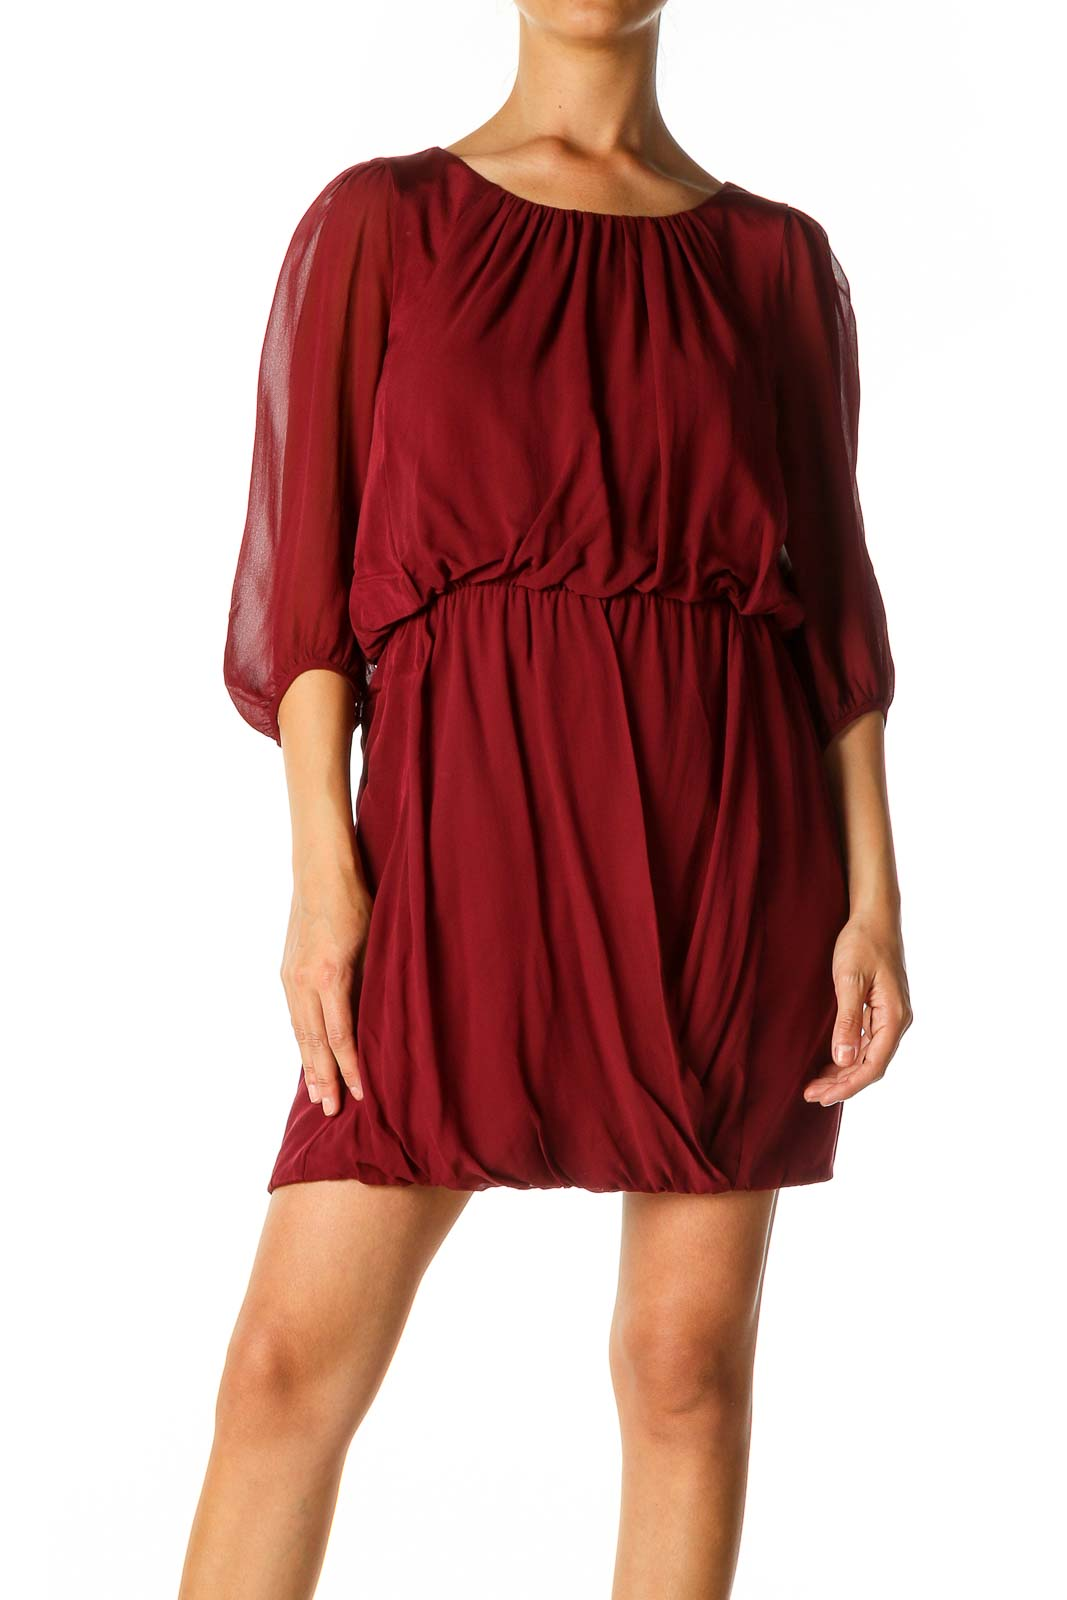 Red Solid Cocktail A-Line Dress Front